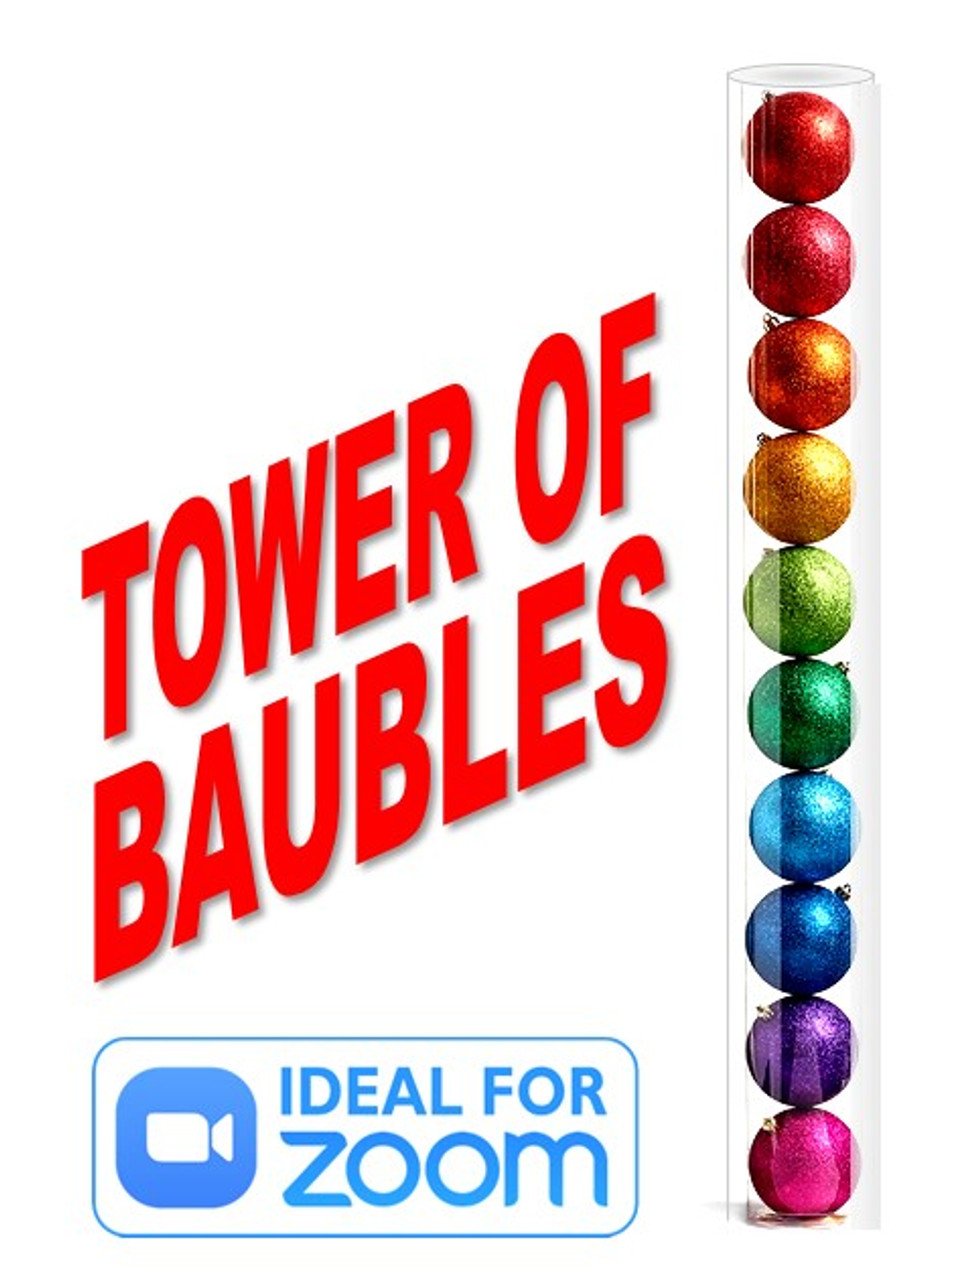 Tower of Baubles Christmas Magic Trick Gospel